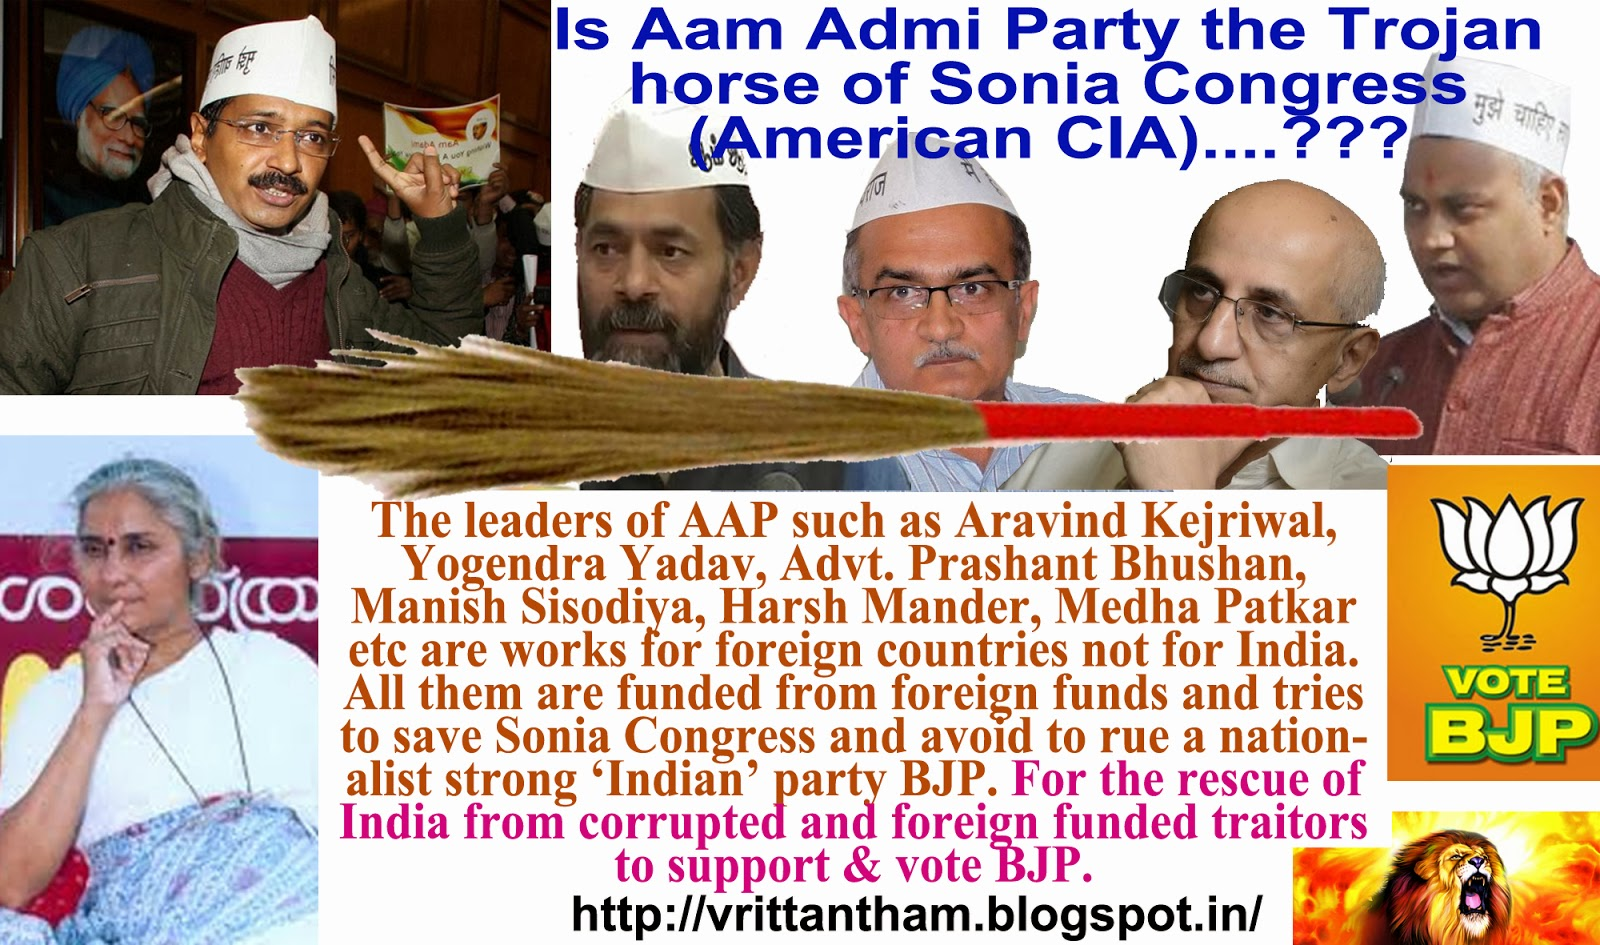 BHARATH VOICE: Is Aam Admi Party the Trojan horse of Sonia